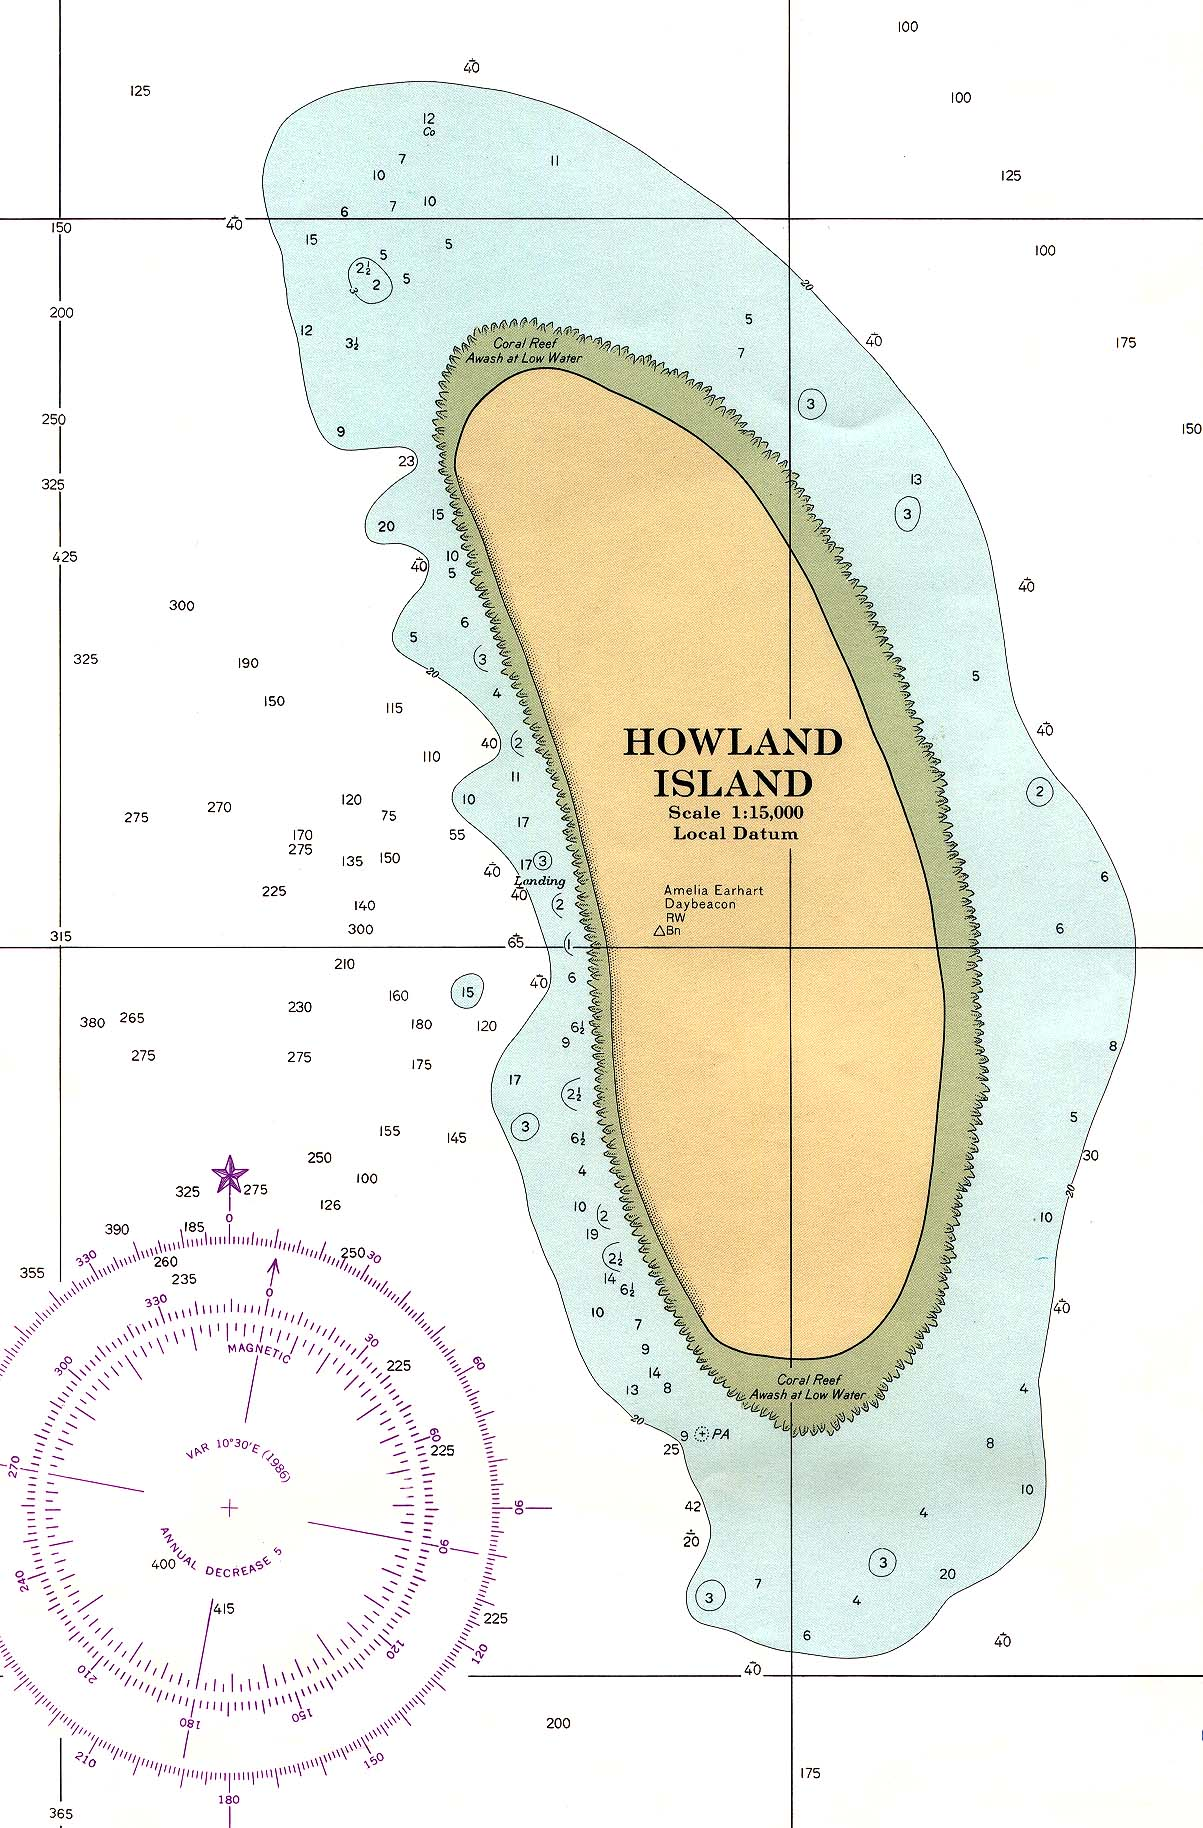 Howland Island On World Map.Howland Island